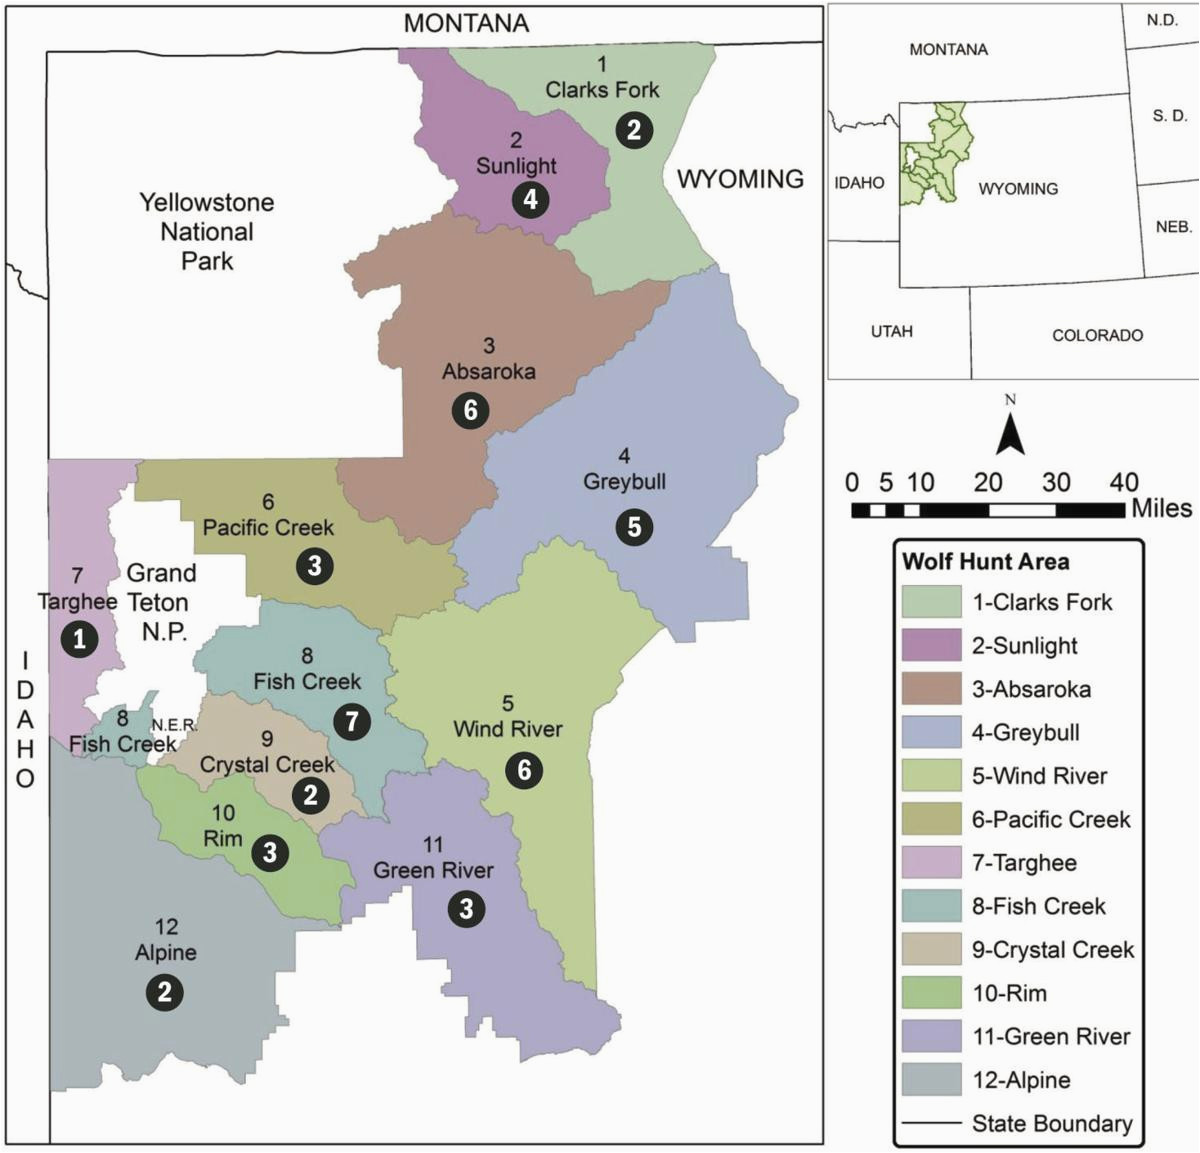 Colorado Elk Population Density Map Wyoming Sets Wolf Population Goal Of 160 Environmental